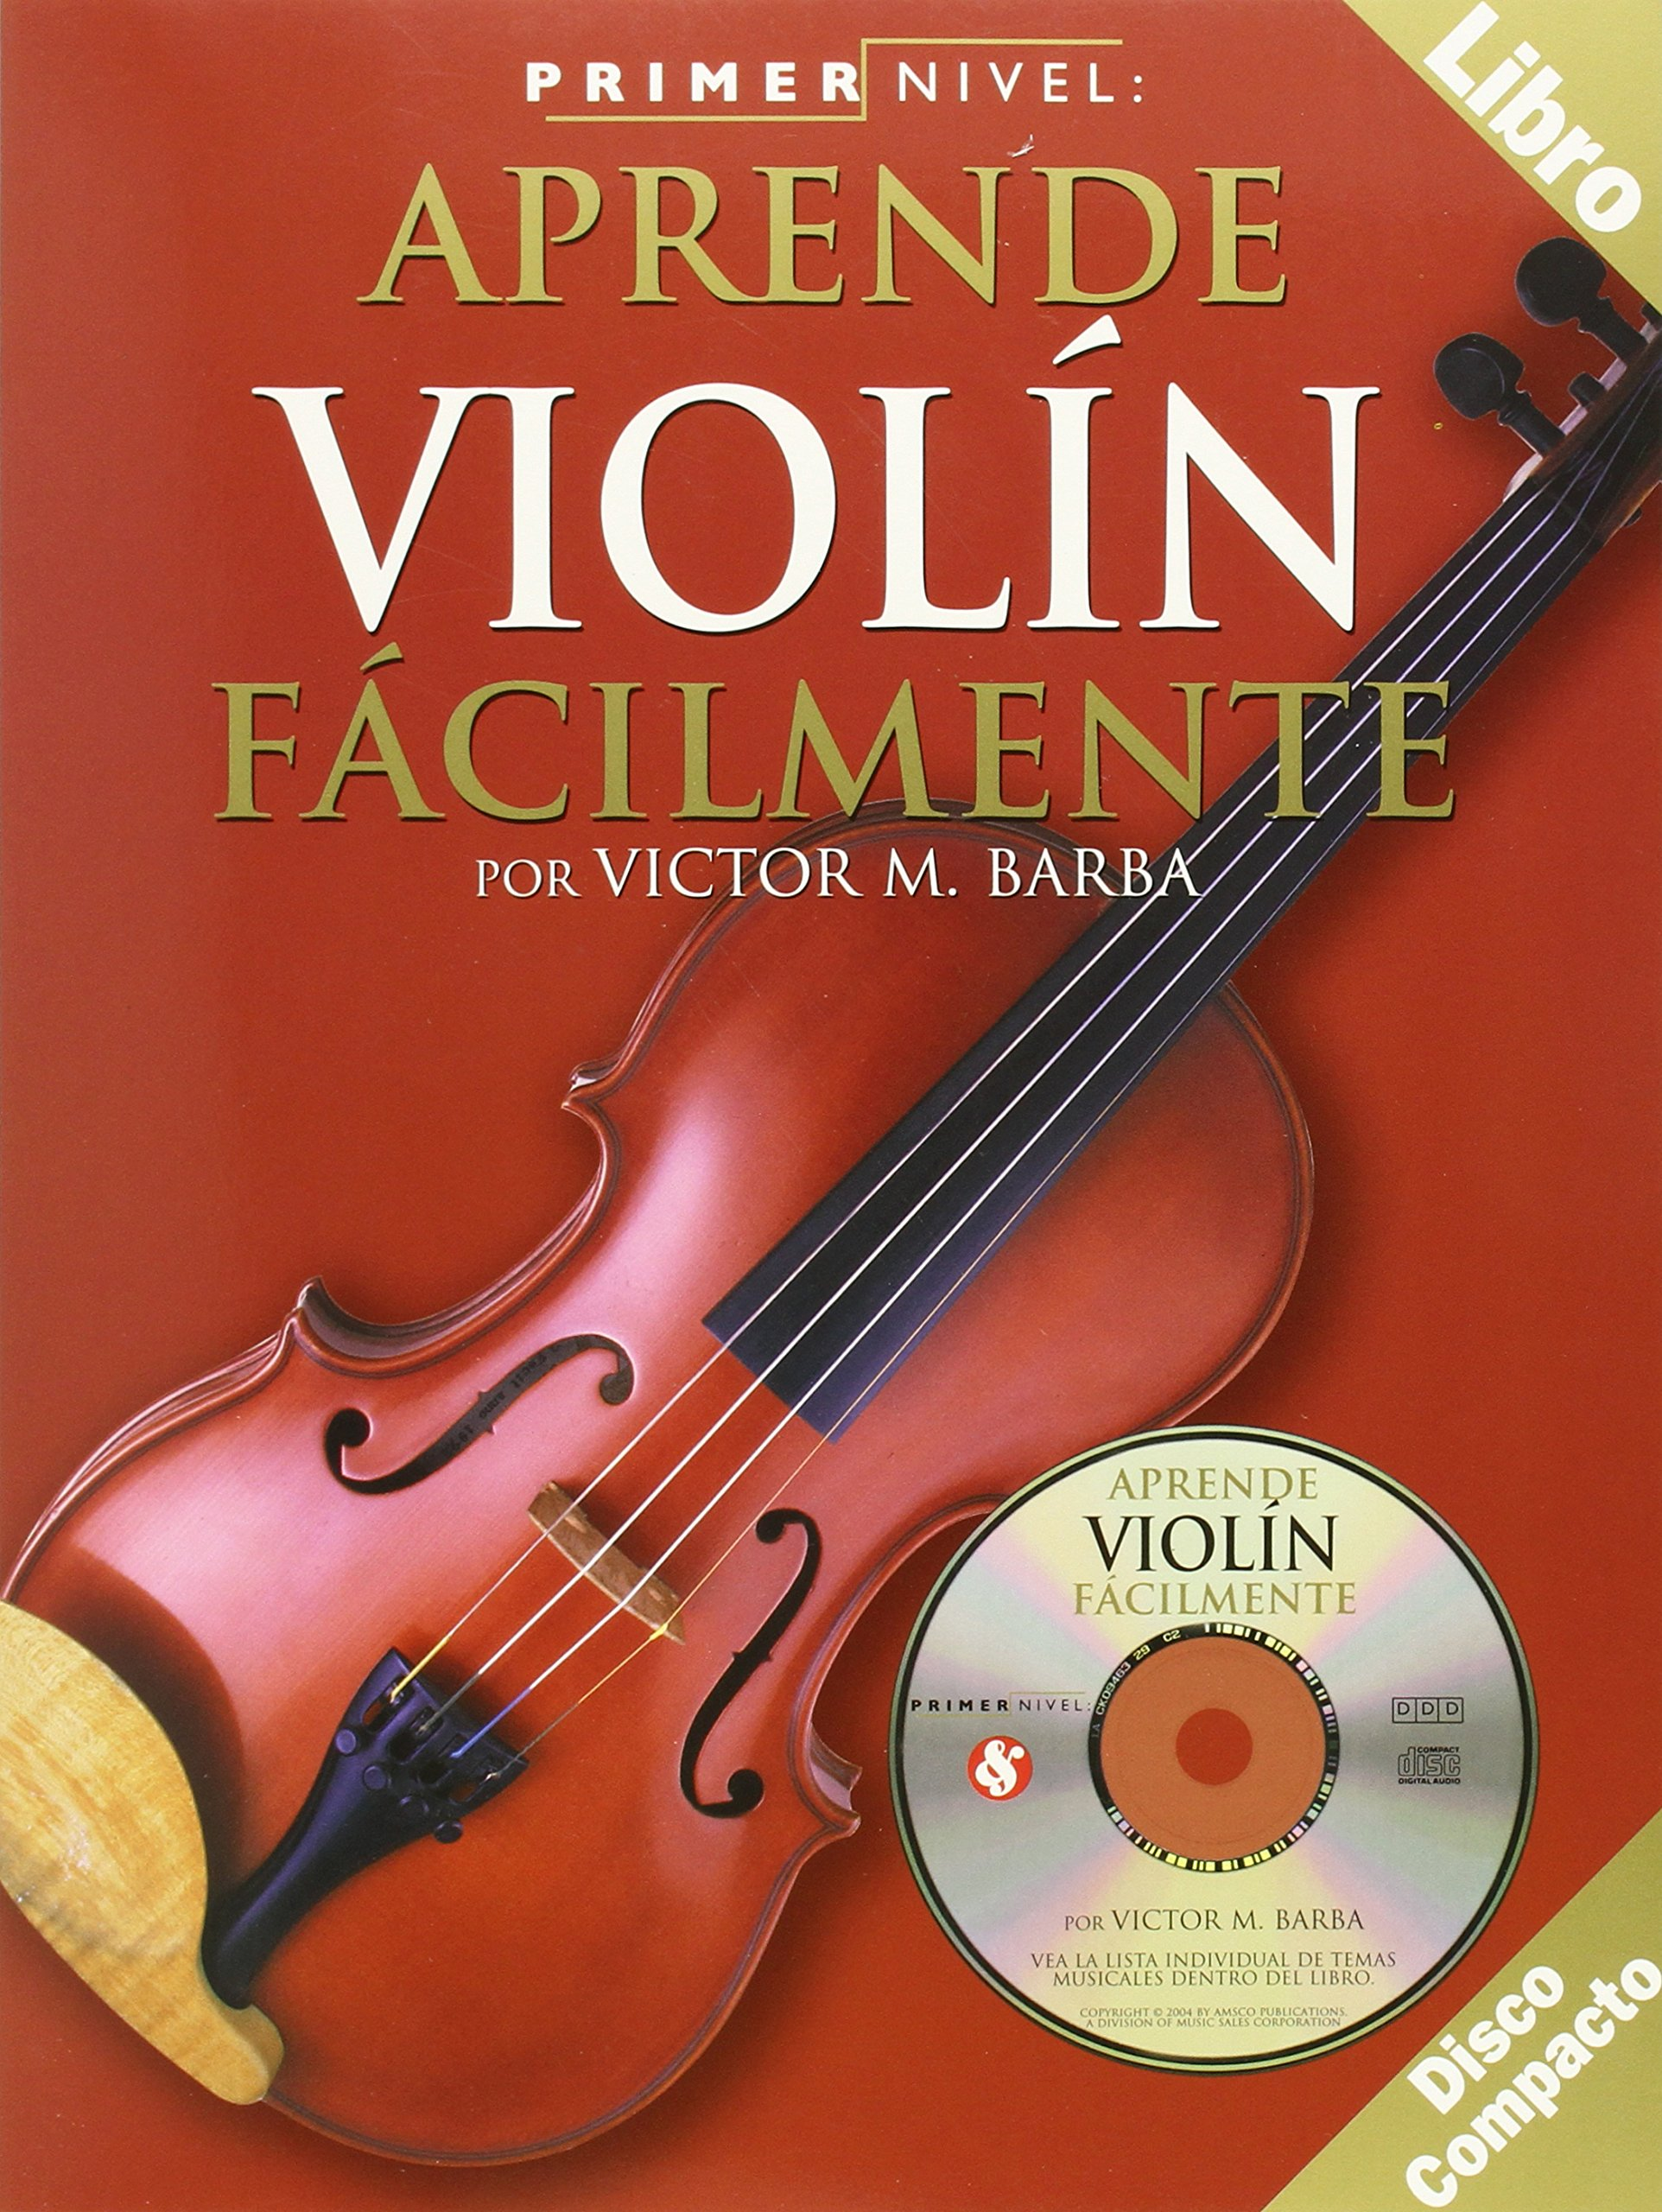 Aprende Violin Facilmente [With CD] (Primer Nivel): Amazon.es ...